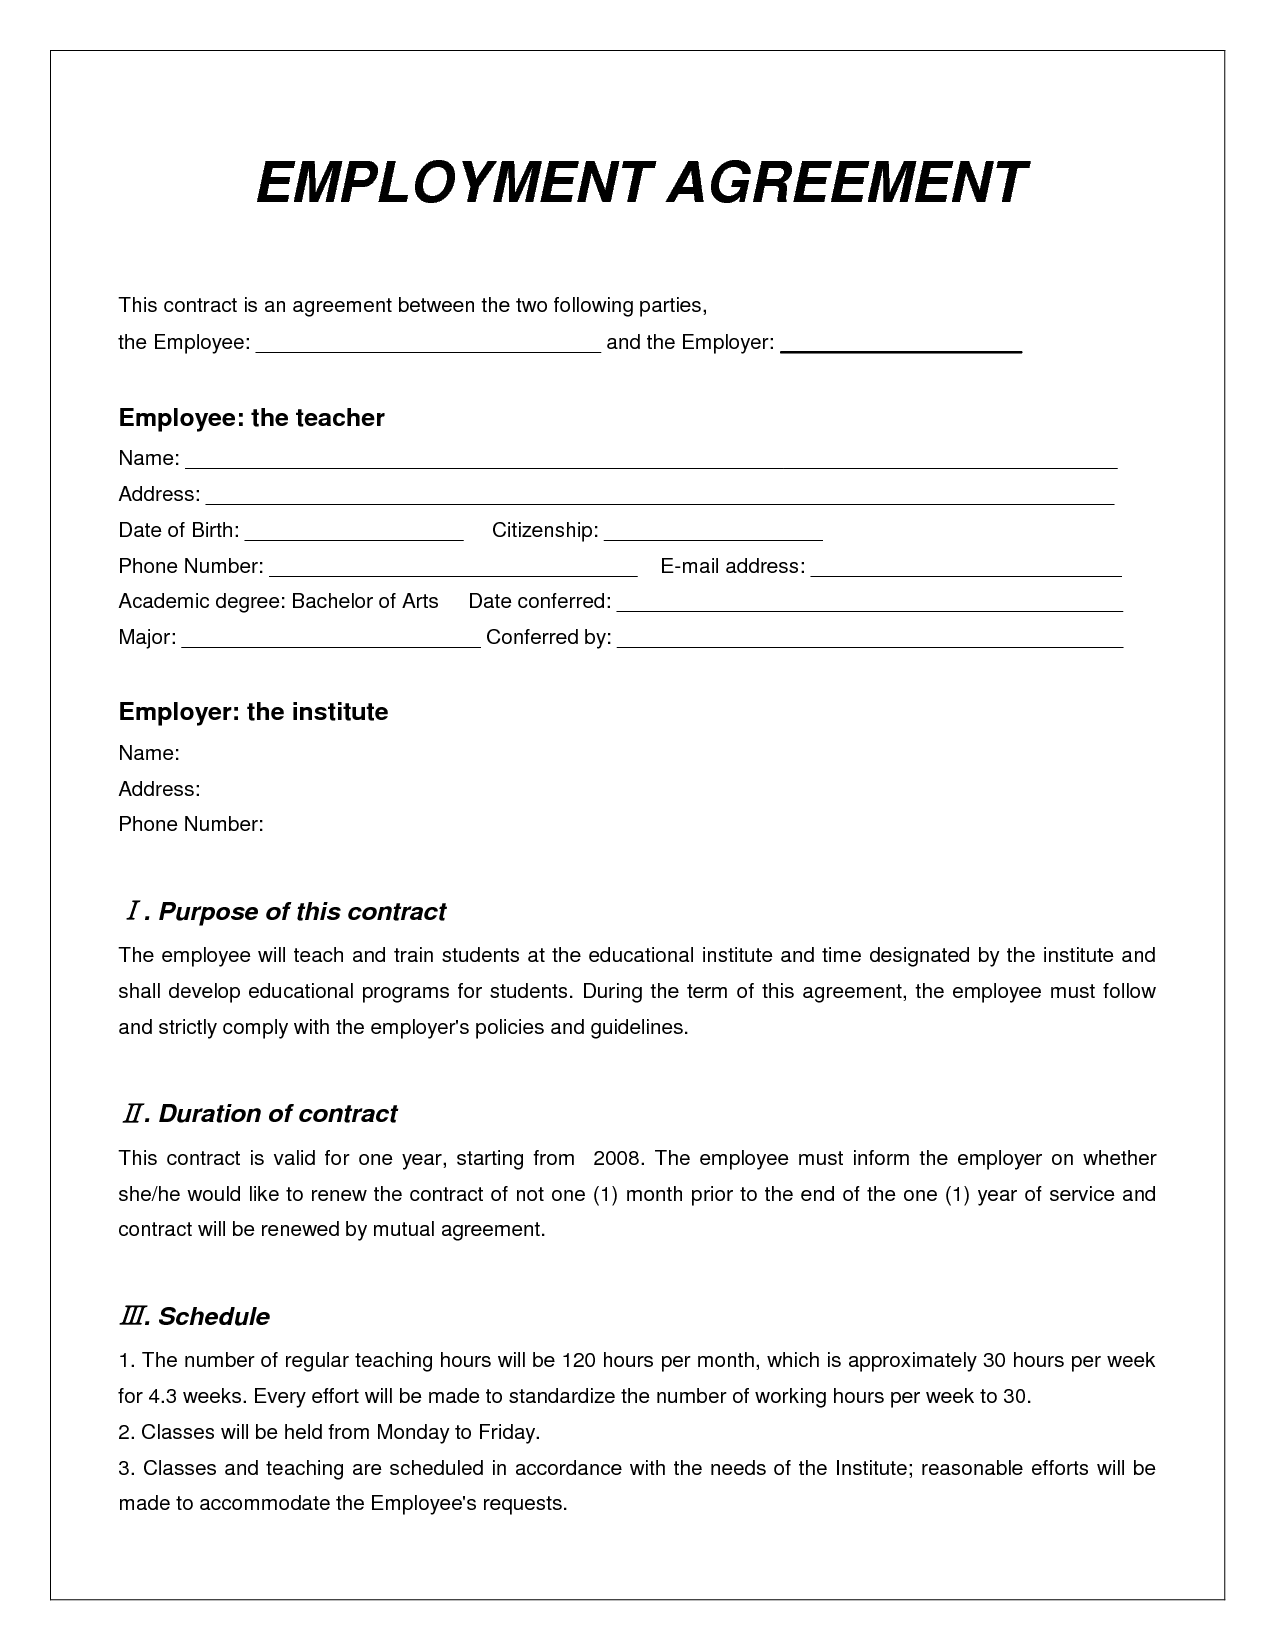 Employment Agreement Contract Template Free Printable